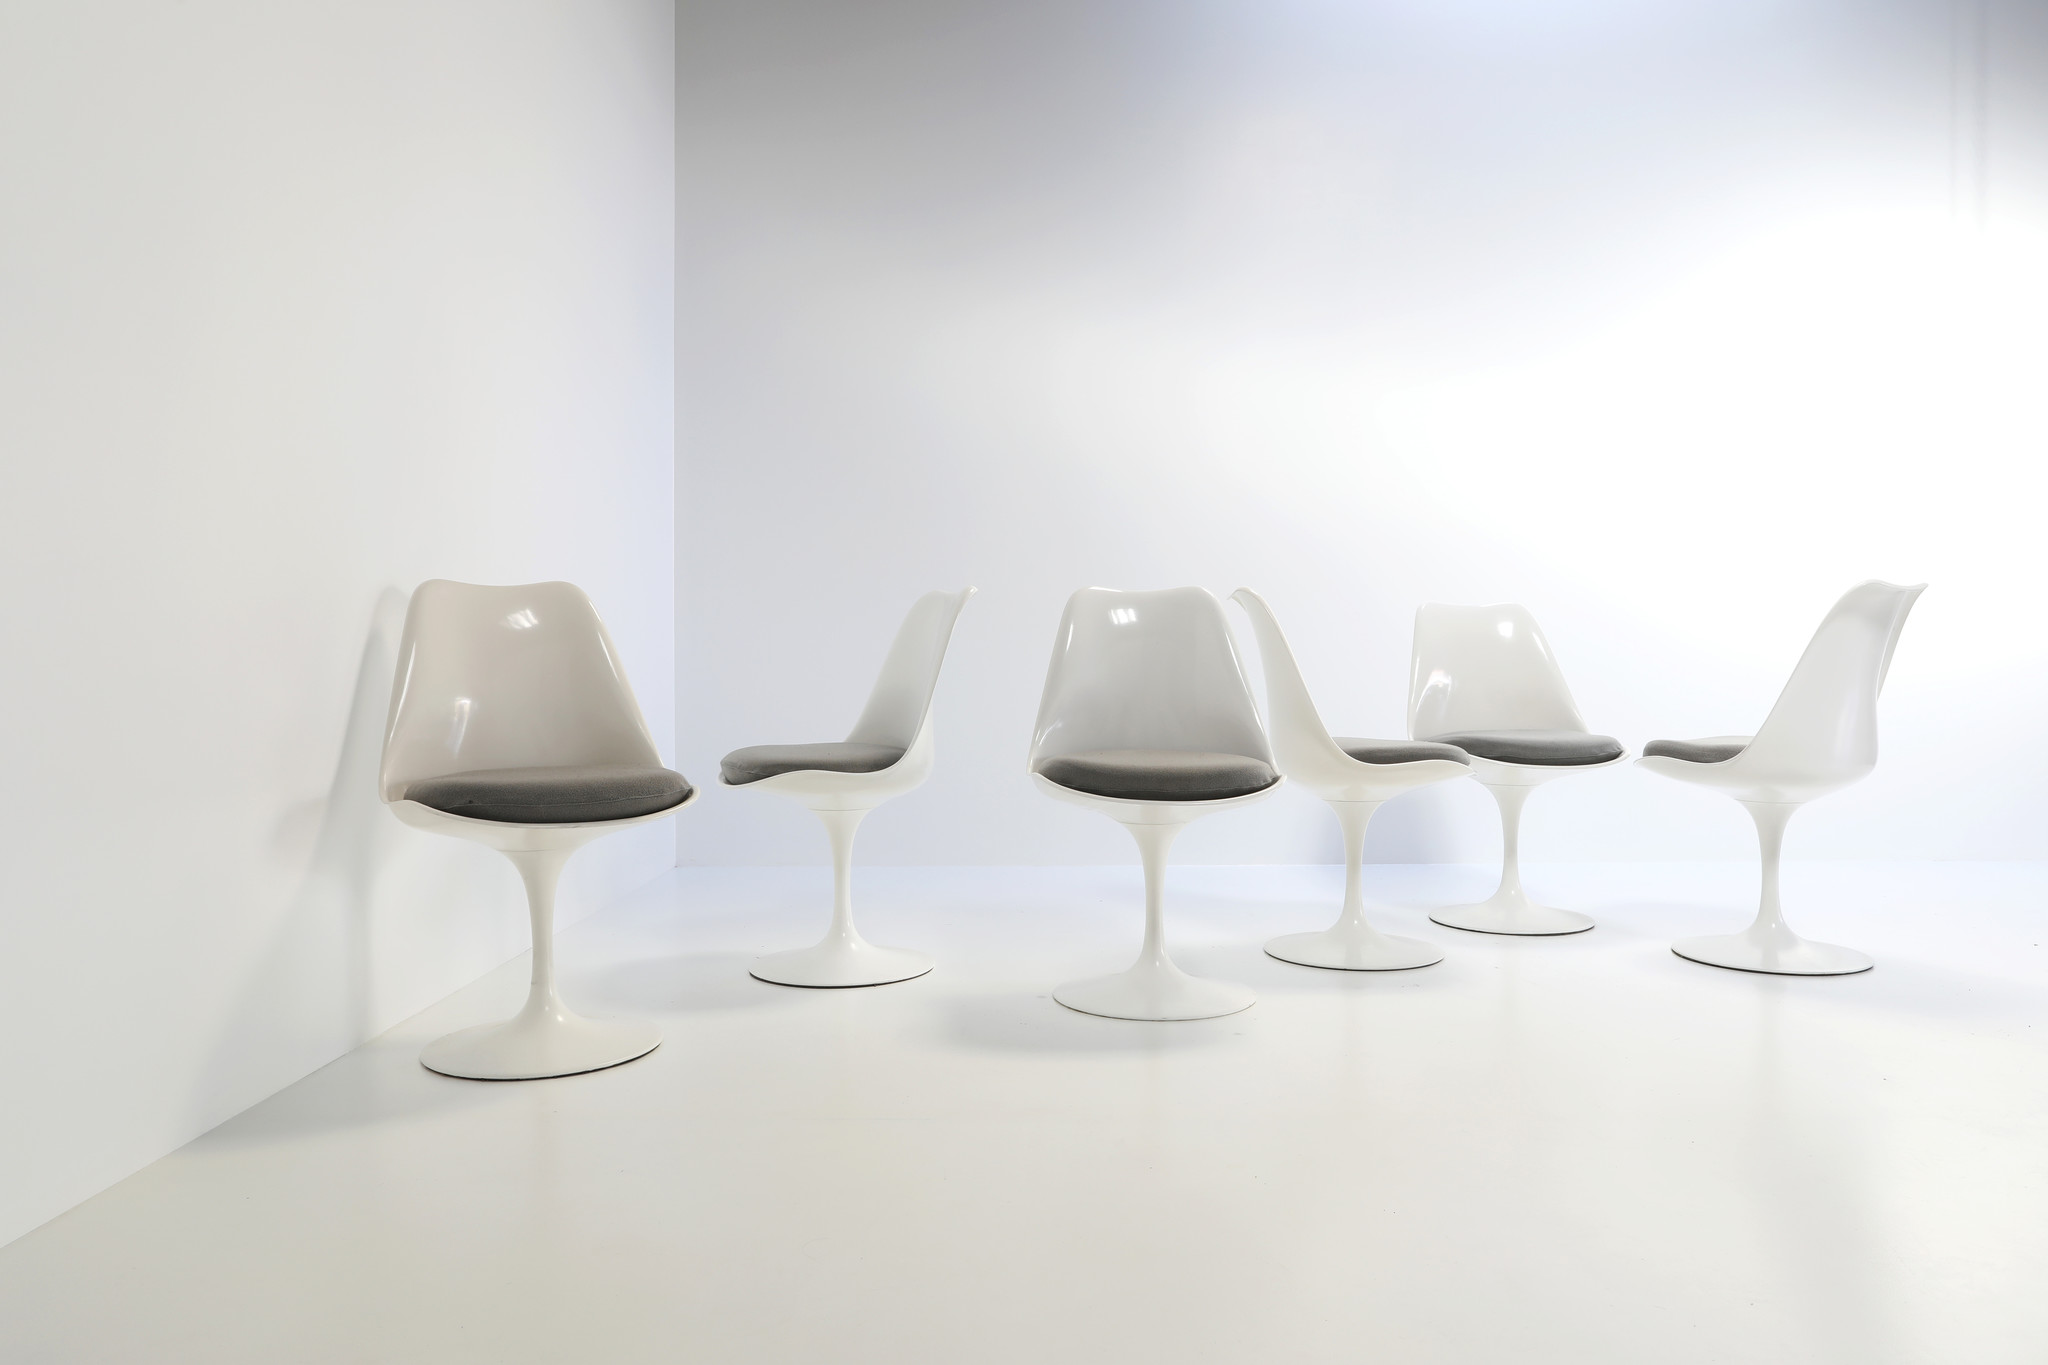 Set van 6 Tulip stoelen door Eero Saarinen voor Knoll international